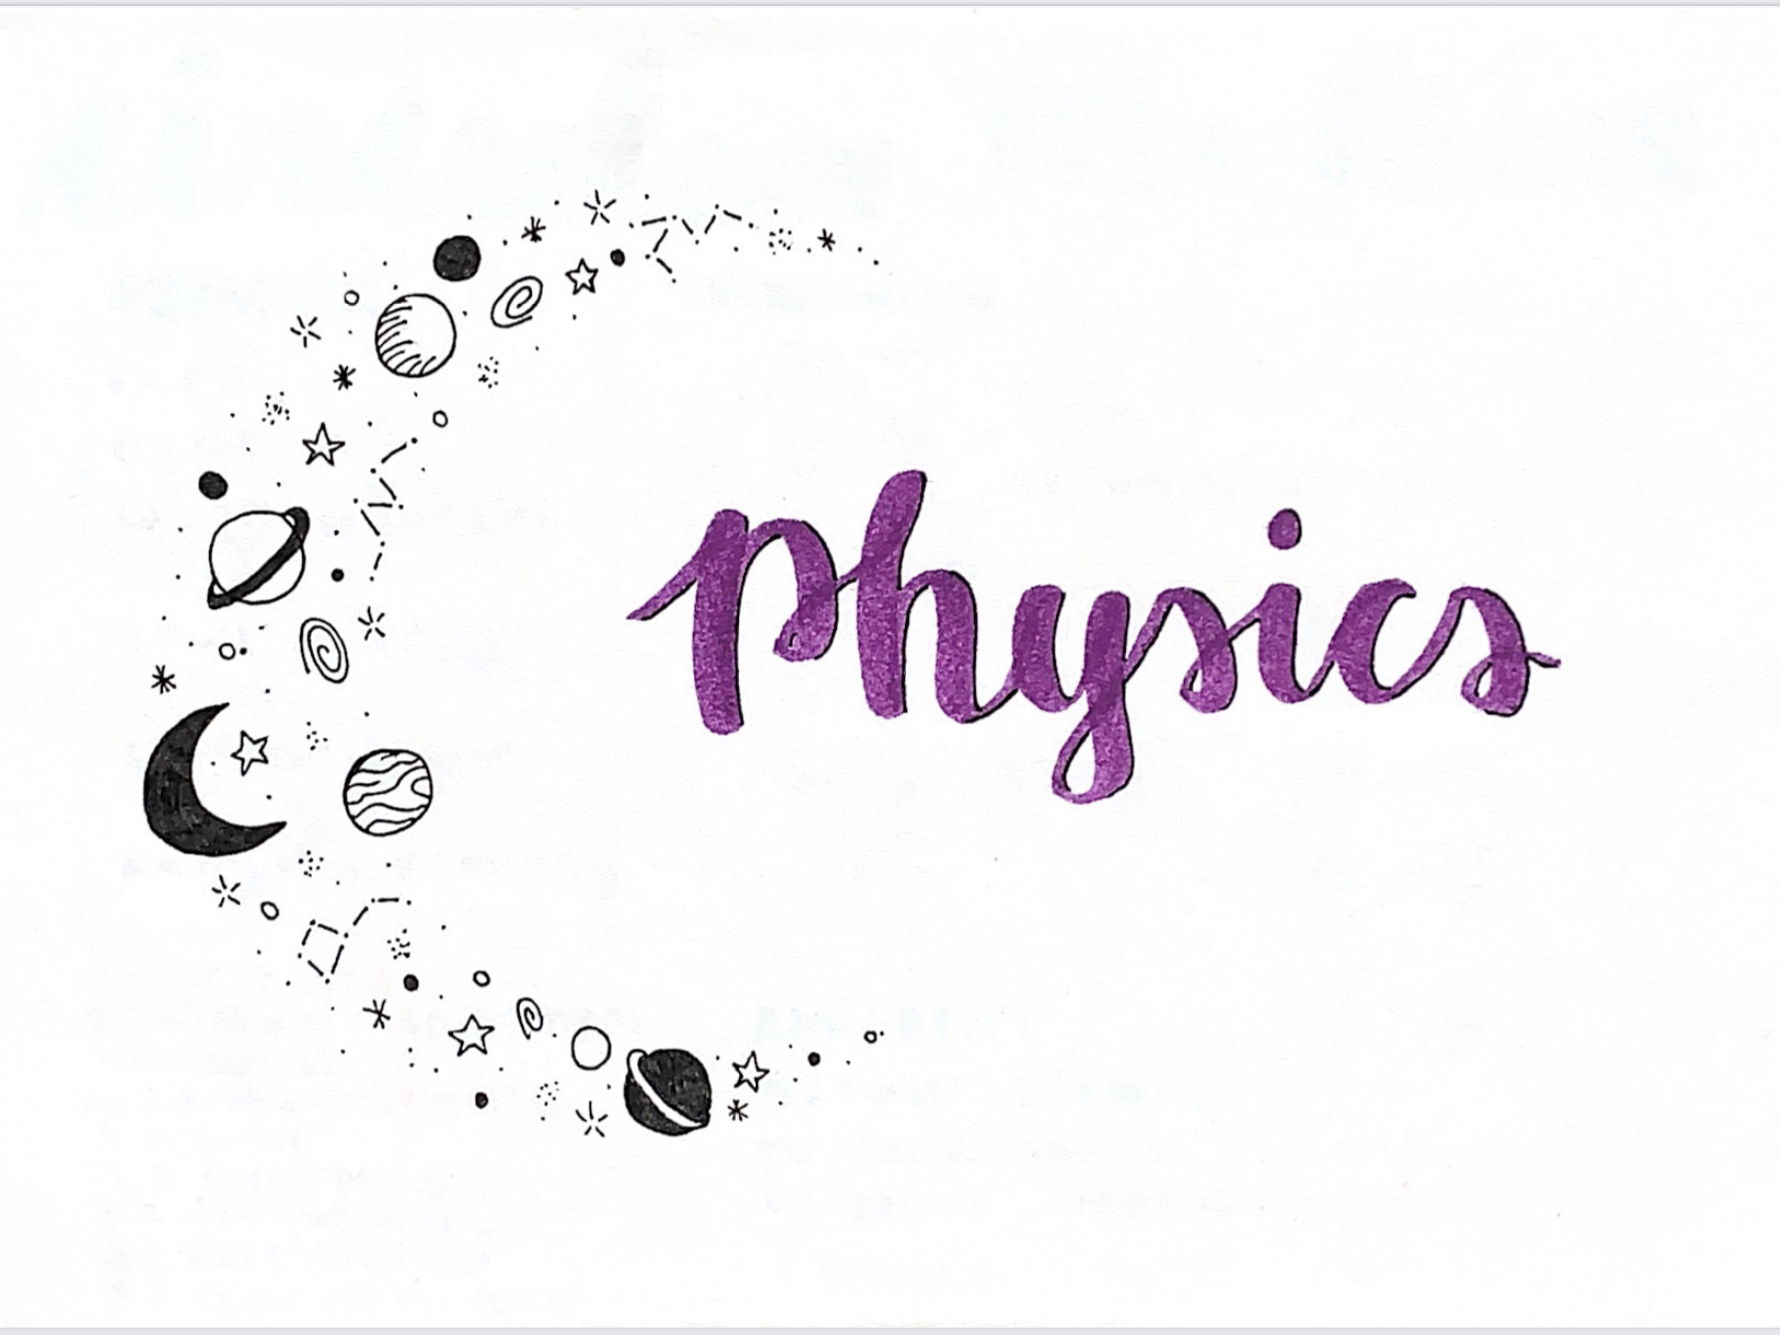 Notes for A Level Physics - Edexcel